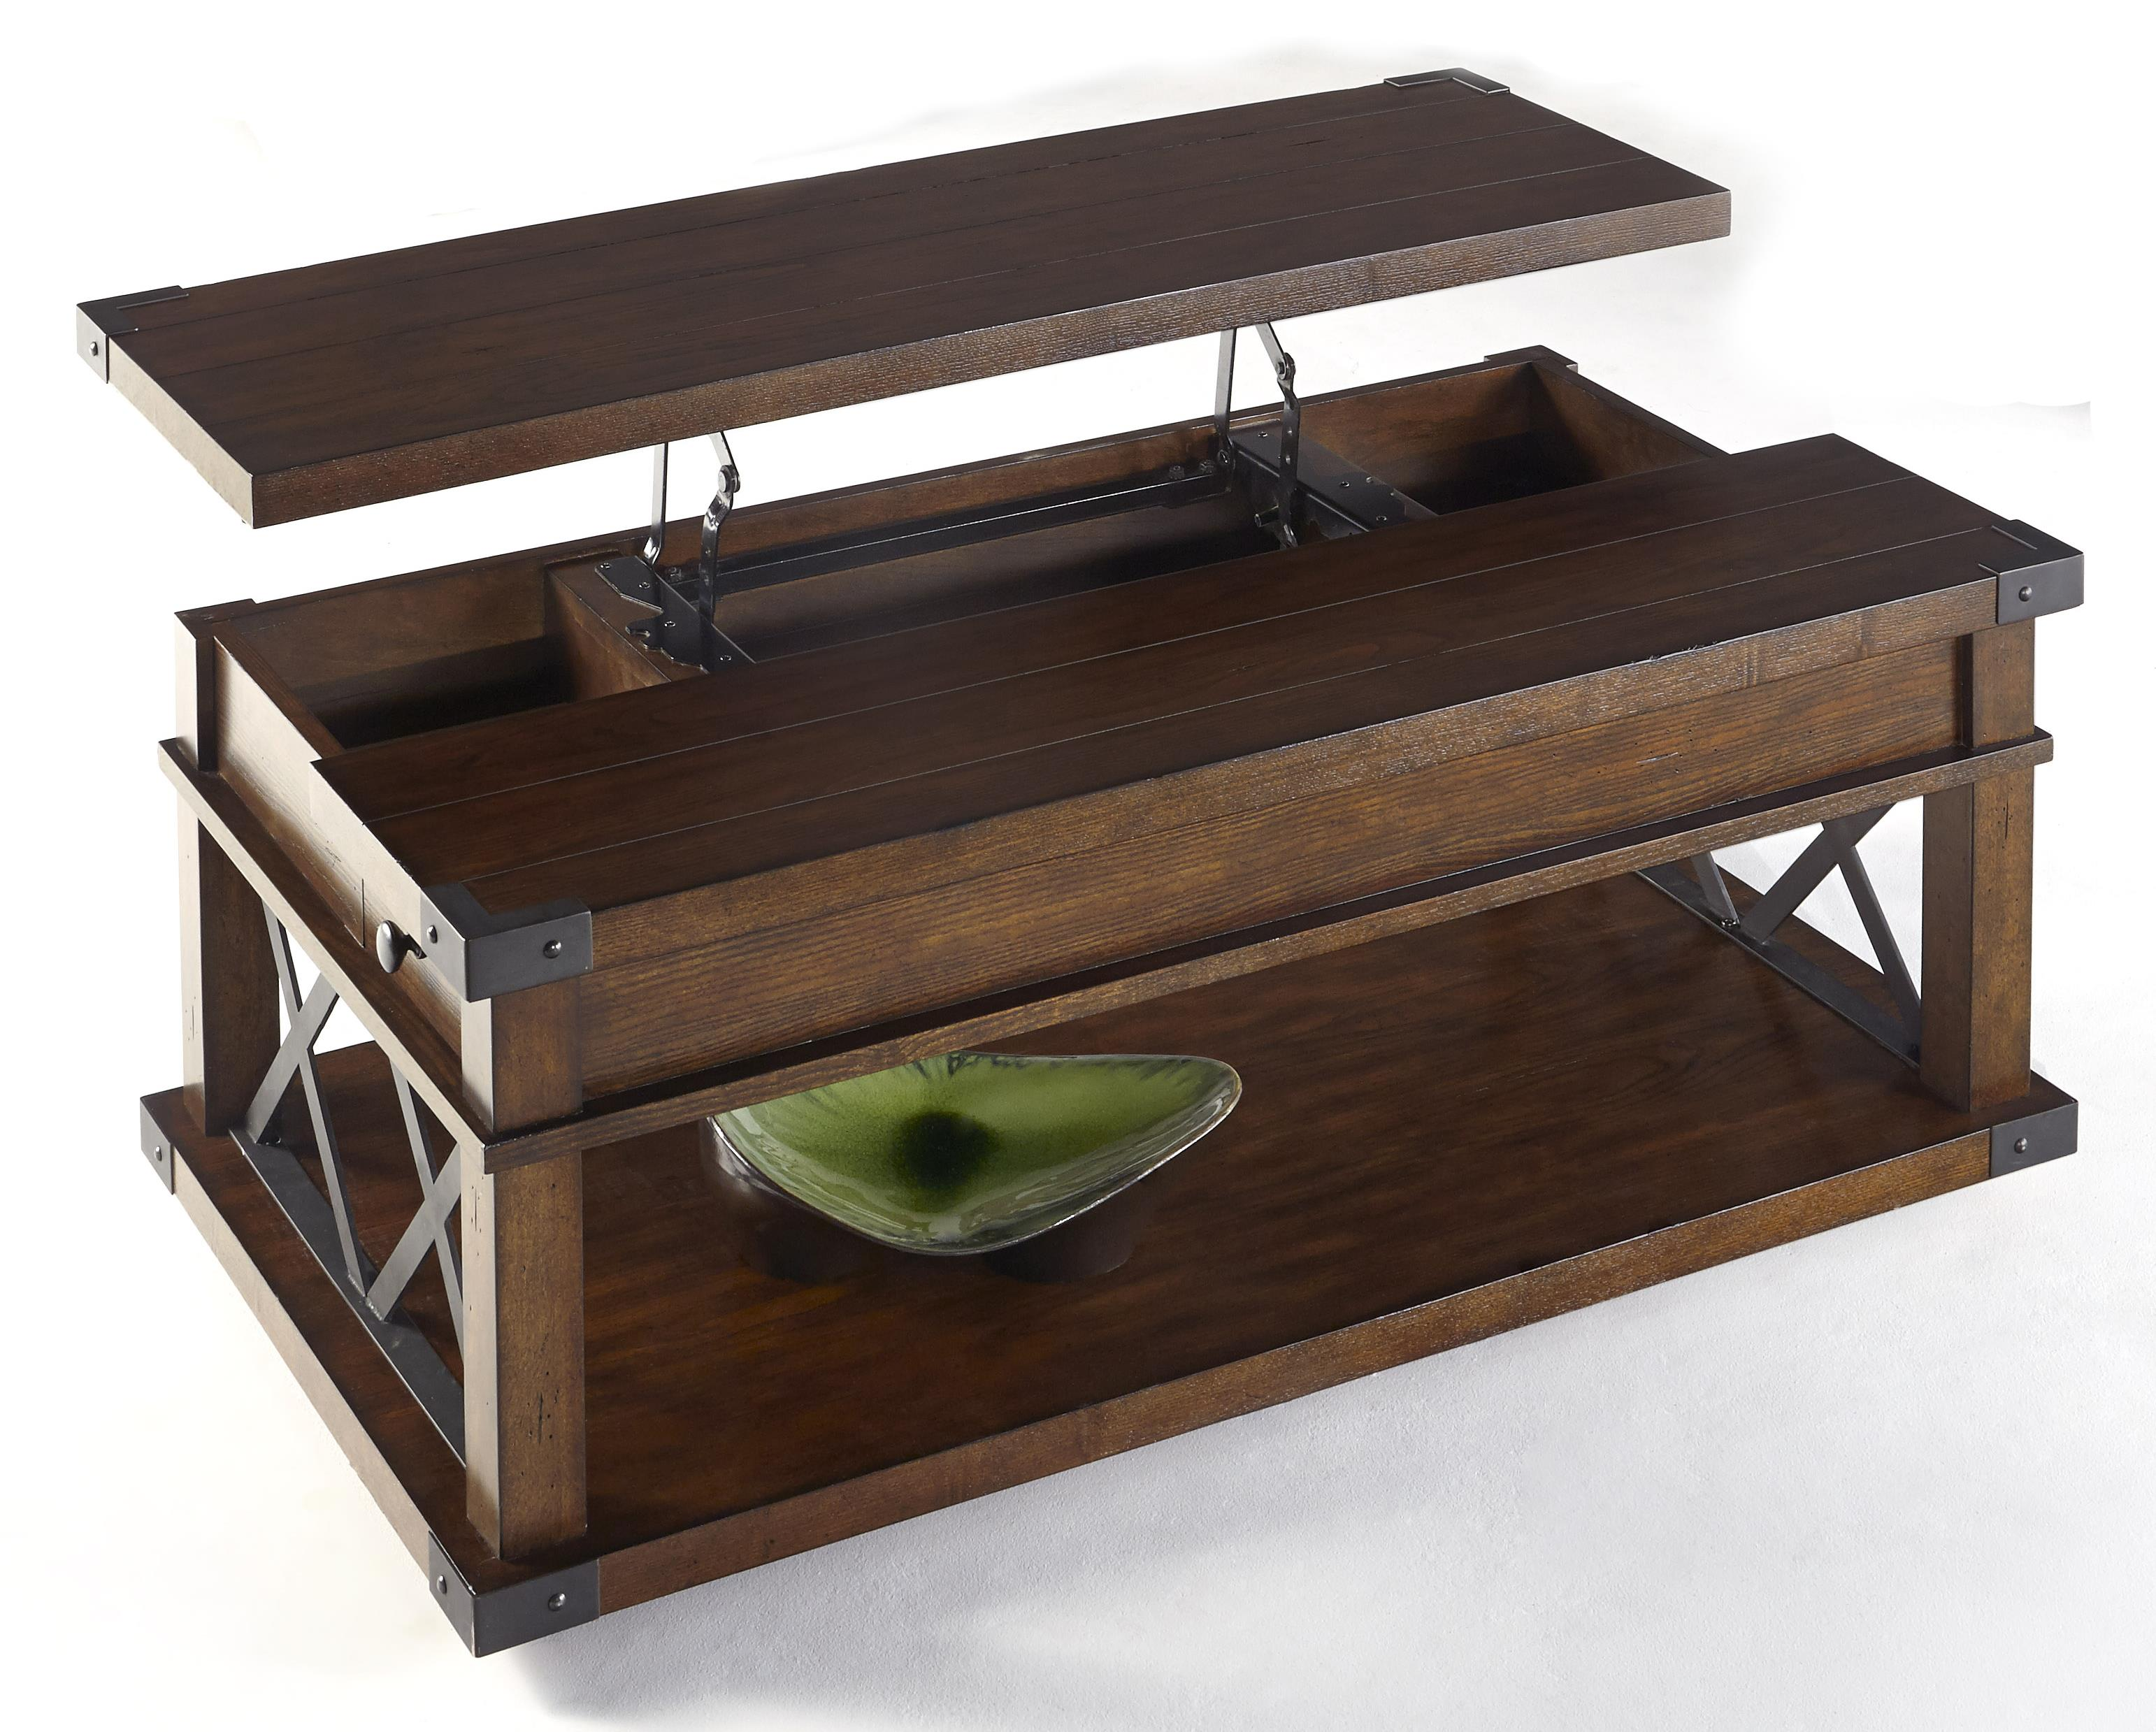 Landmark Castered Lift-Top Cocktail Table by Progressive Furniture at Darvin Furniture